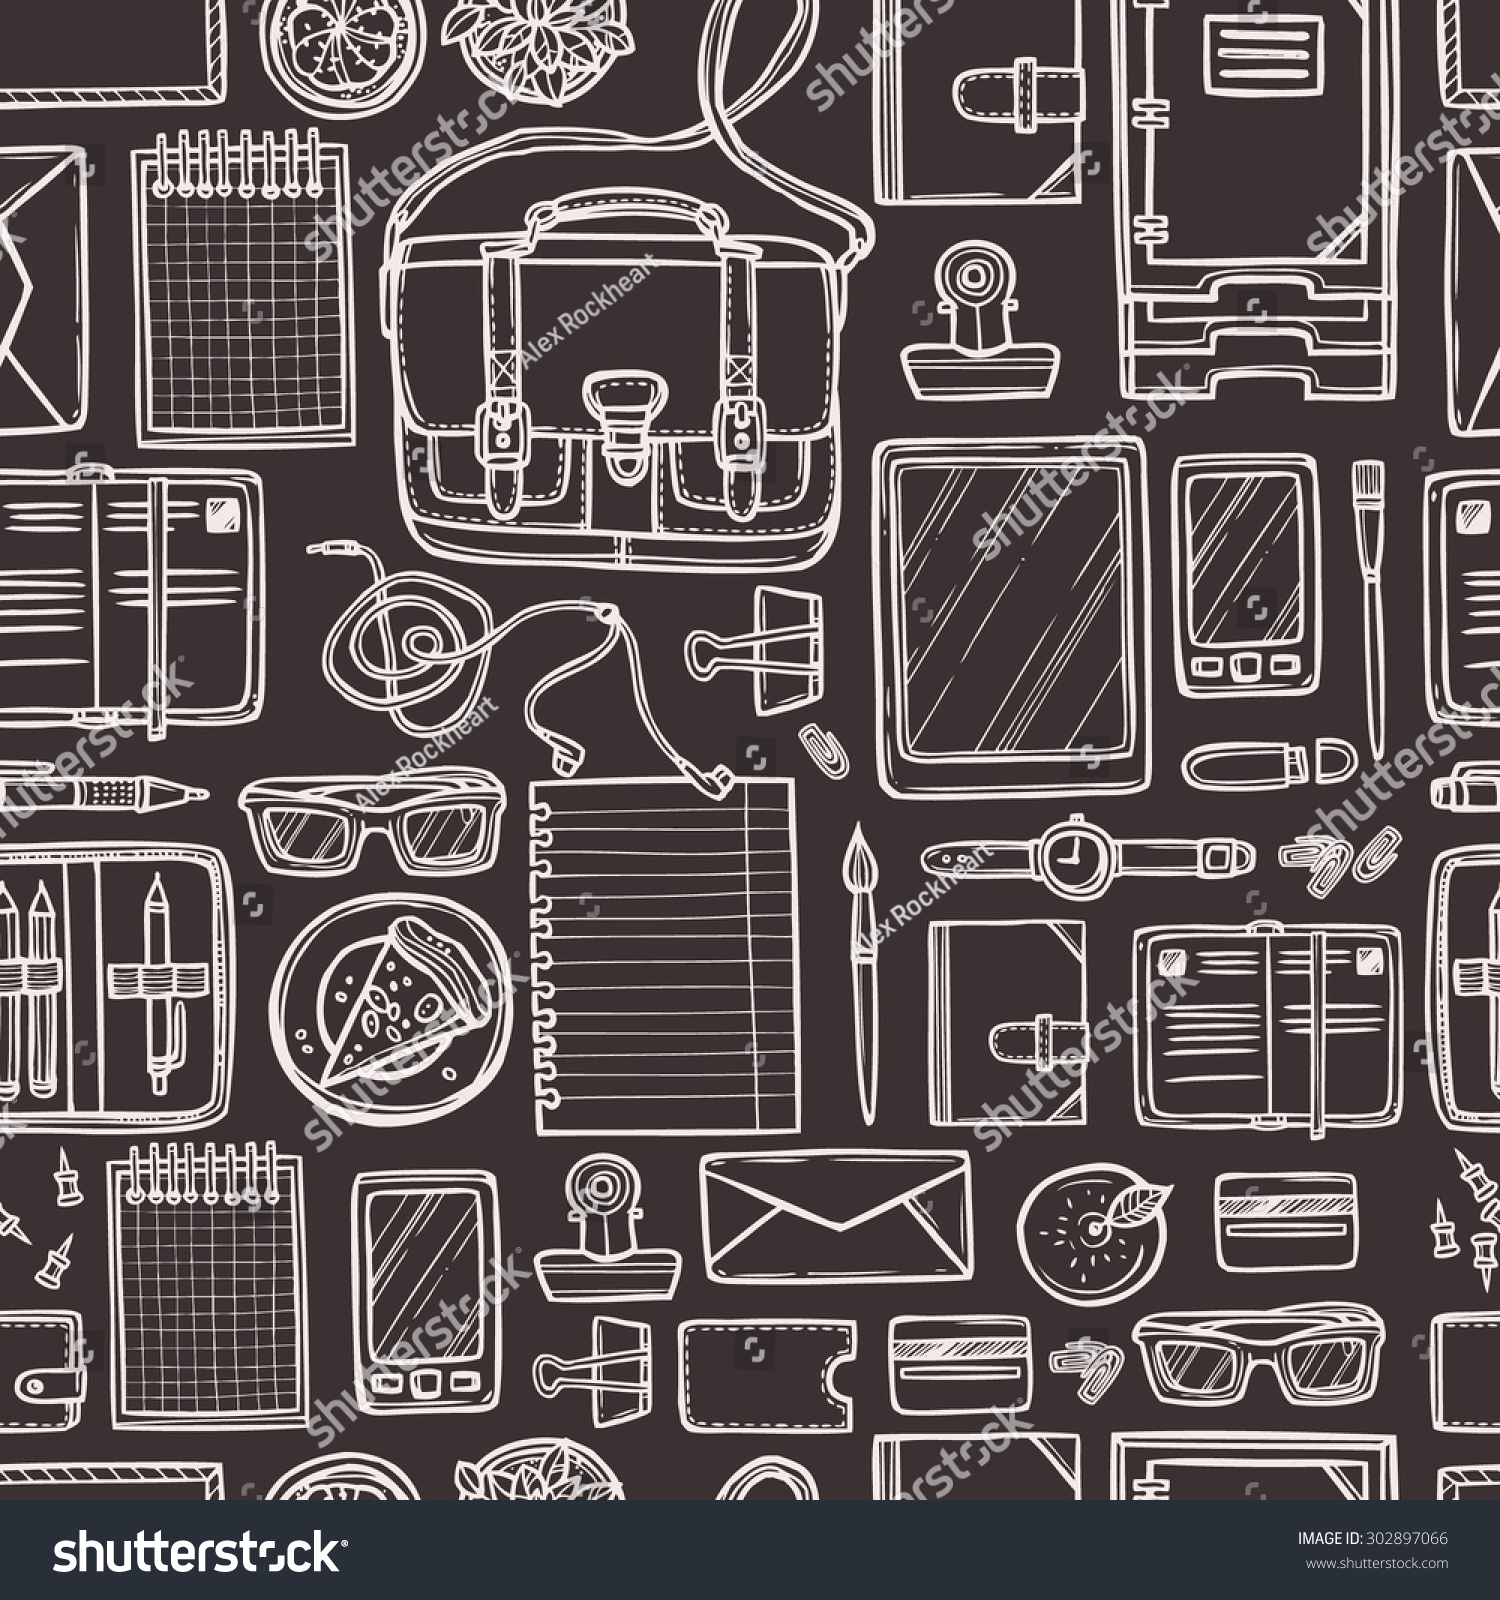 school education seamless pattern sketch doodle stock vector hd